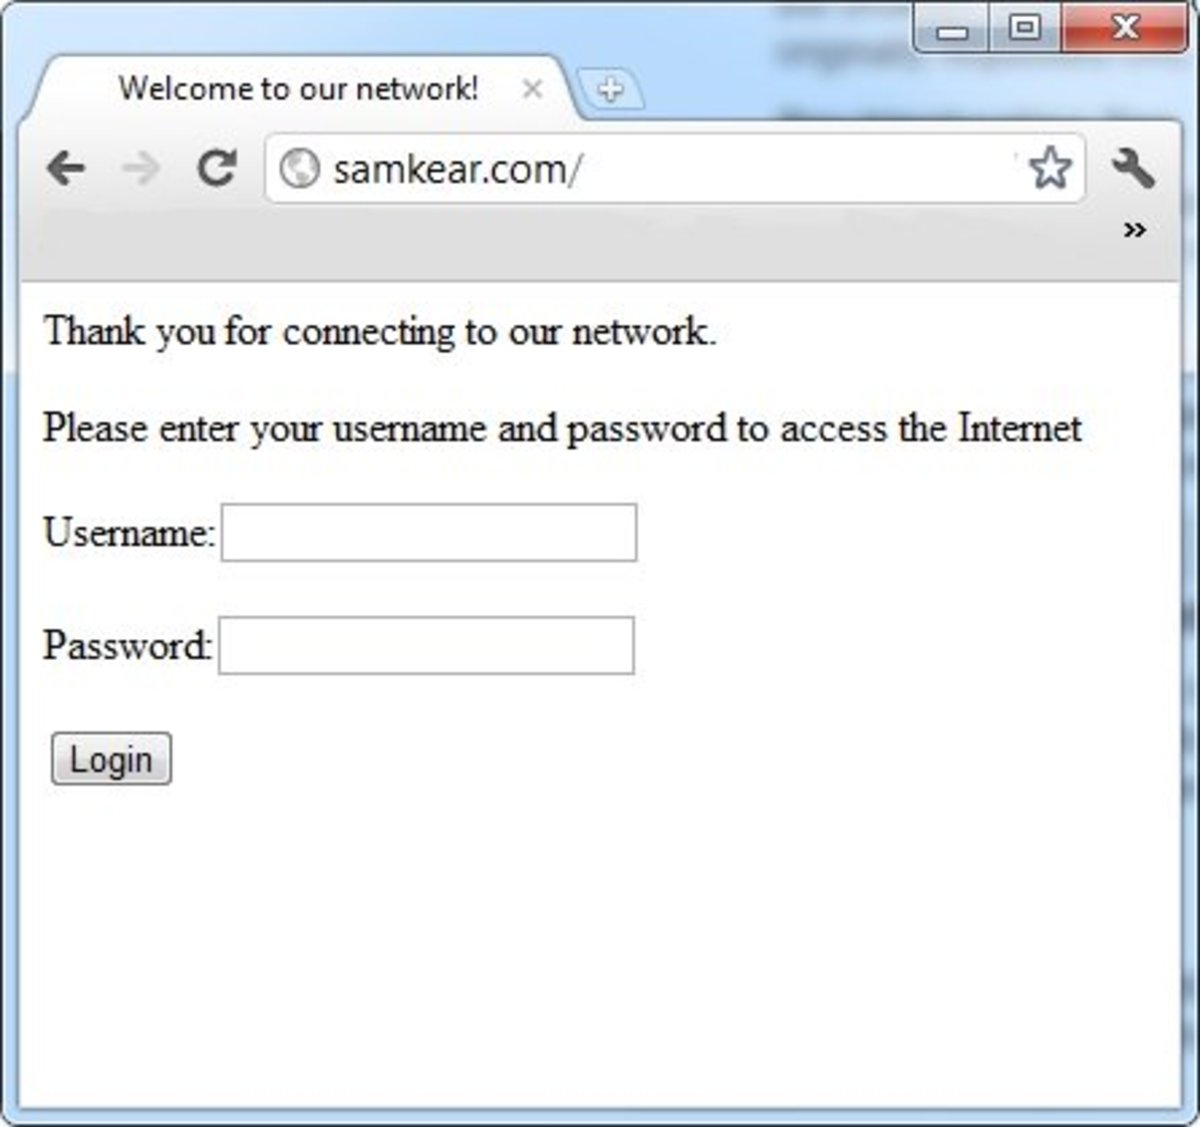 When authentication is enabled users must enter a username and password to access the network.